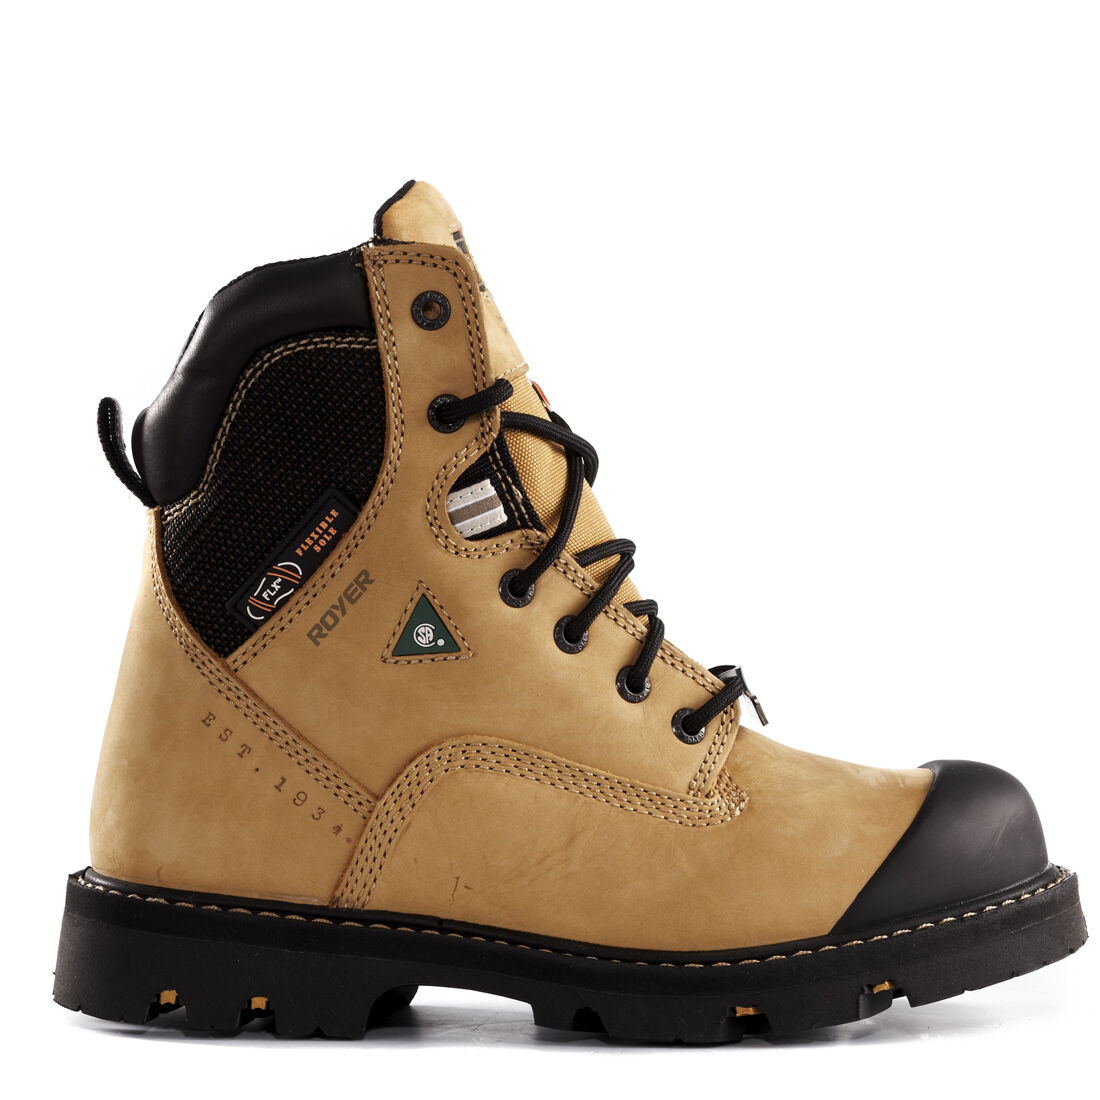 Royer Safety / Work Boots 10-8510 EEE 8 inches Bottes de Travail